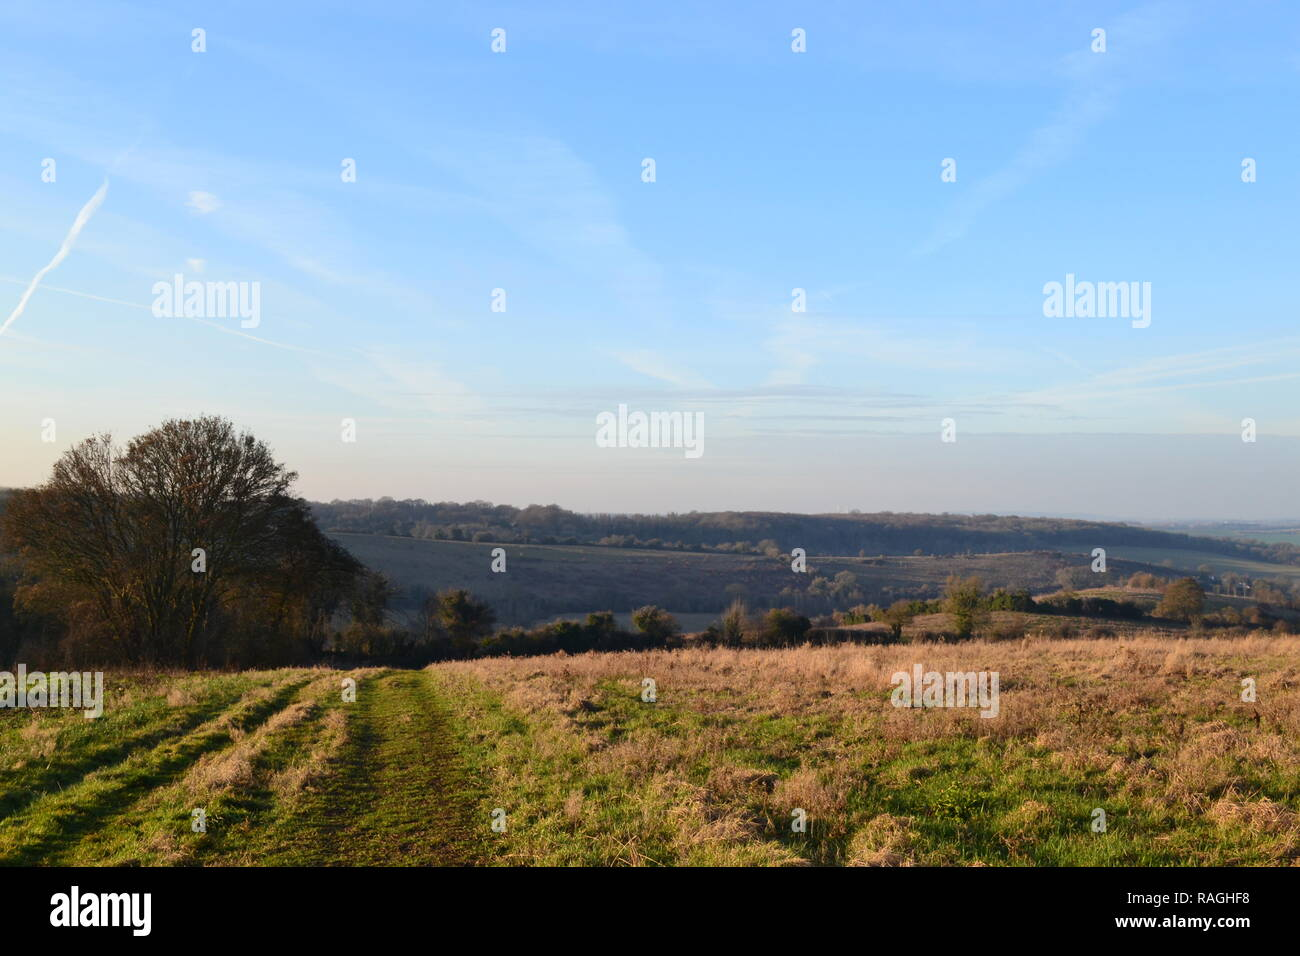 A clear blue winter sky at Romney Street, Darent Valley. Countryside in north west Kent, England - Stock Image